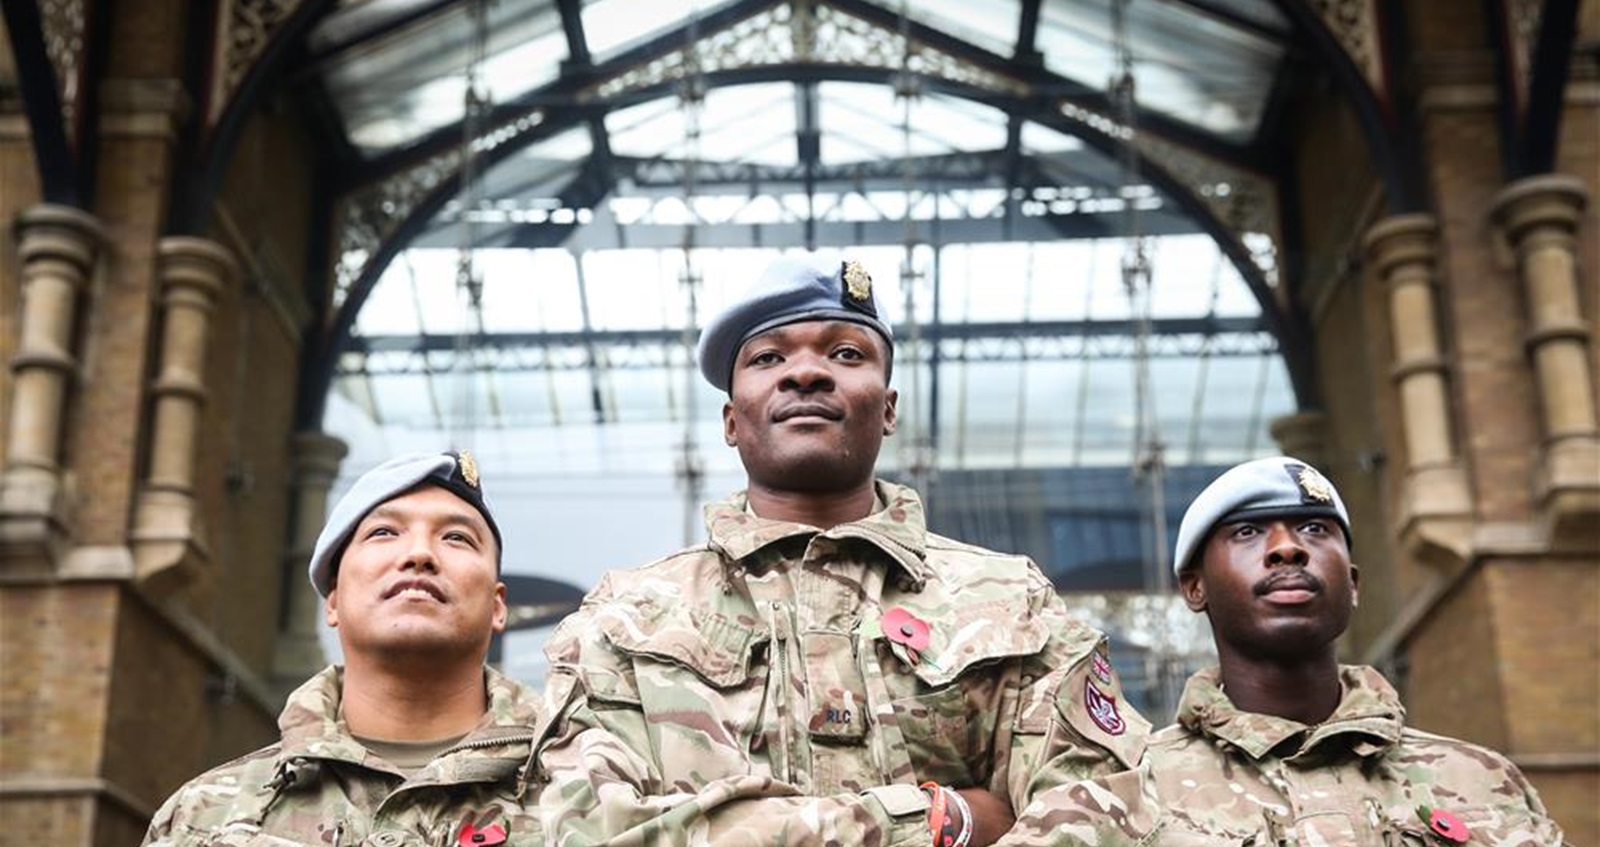 Soldiers at London Poppy Day